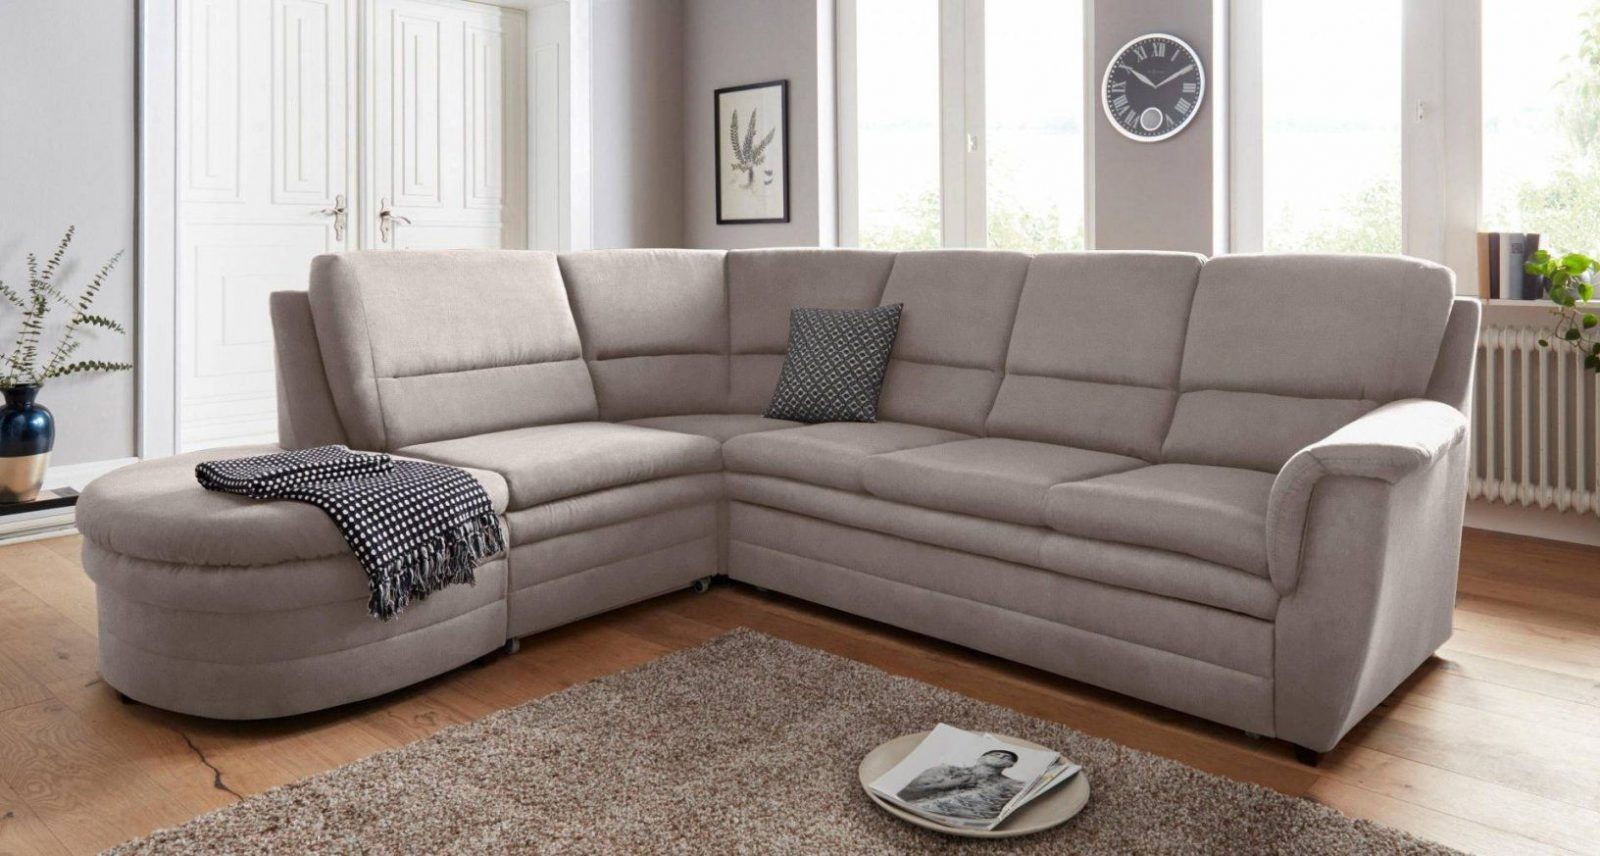 Otto Polstermbel Beautiful Couch Bei Otto With Couch Bei Otto With von Otto Polsterecke Mit Bettfunktion Photo